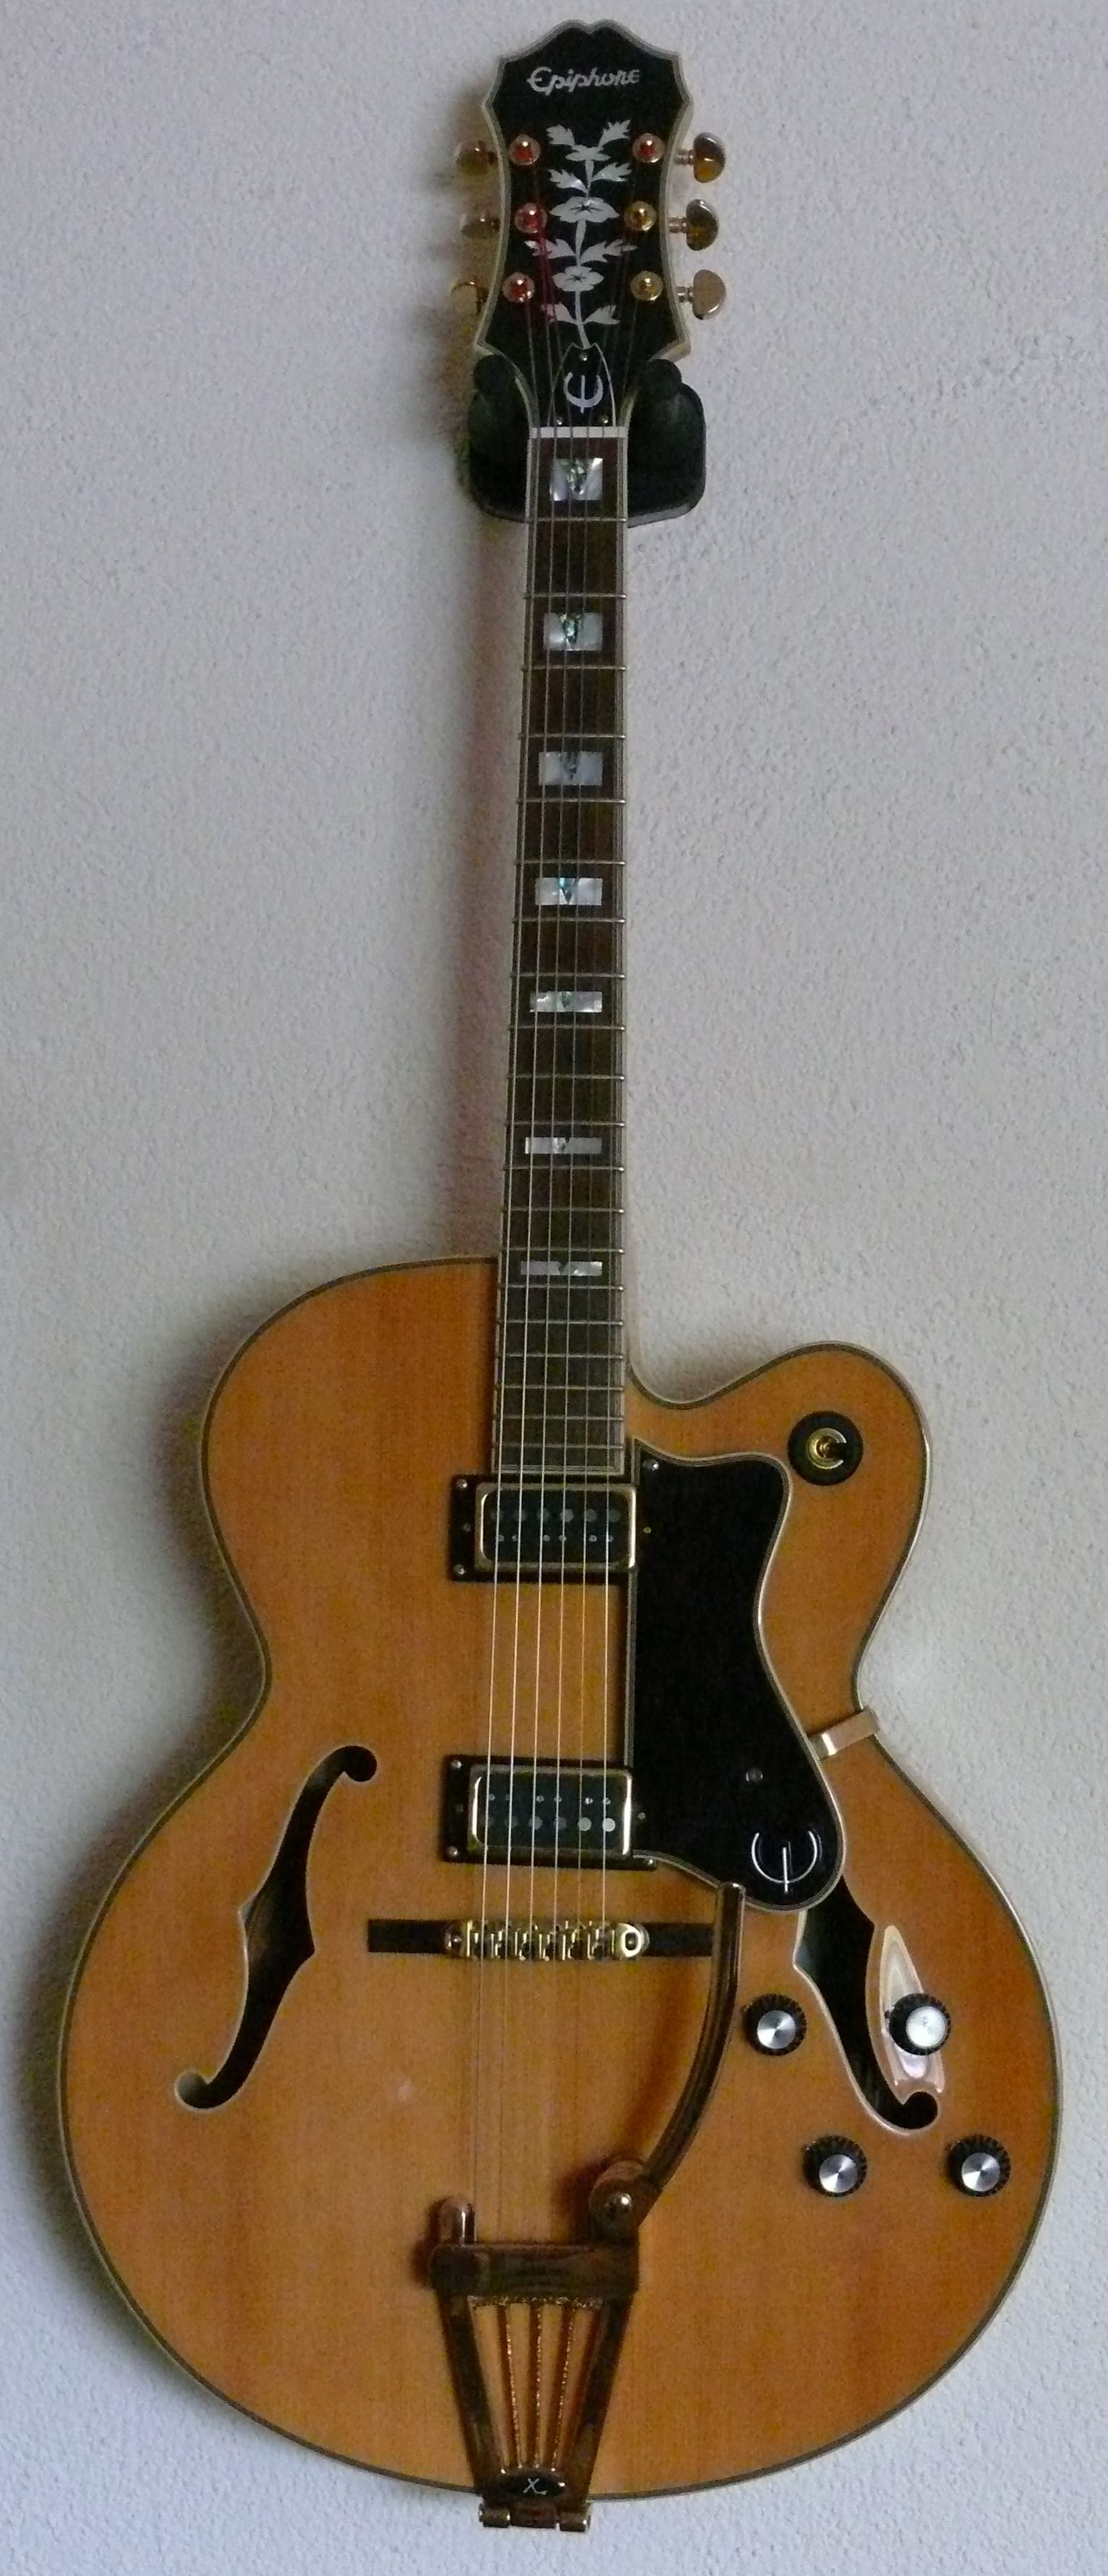 2011 Epiphone Broadway with Xtrem Vintage vibrato and GFS Surf 90 ...